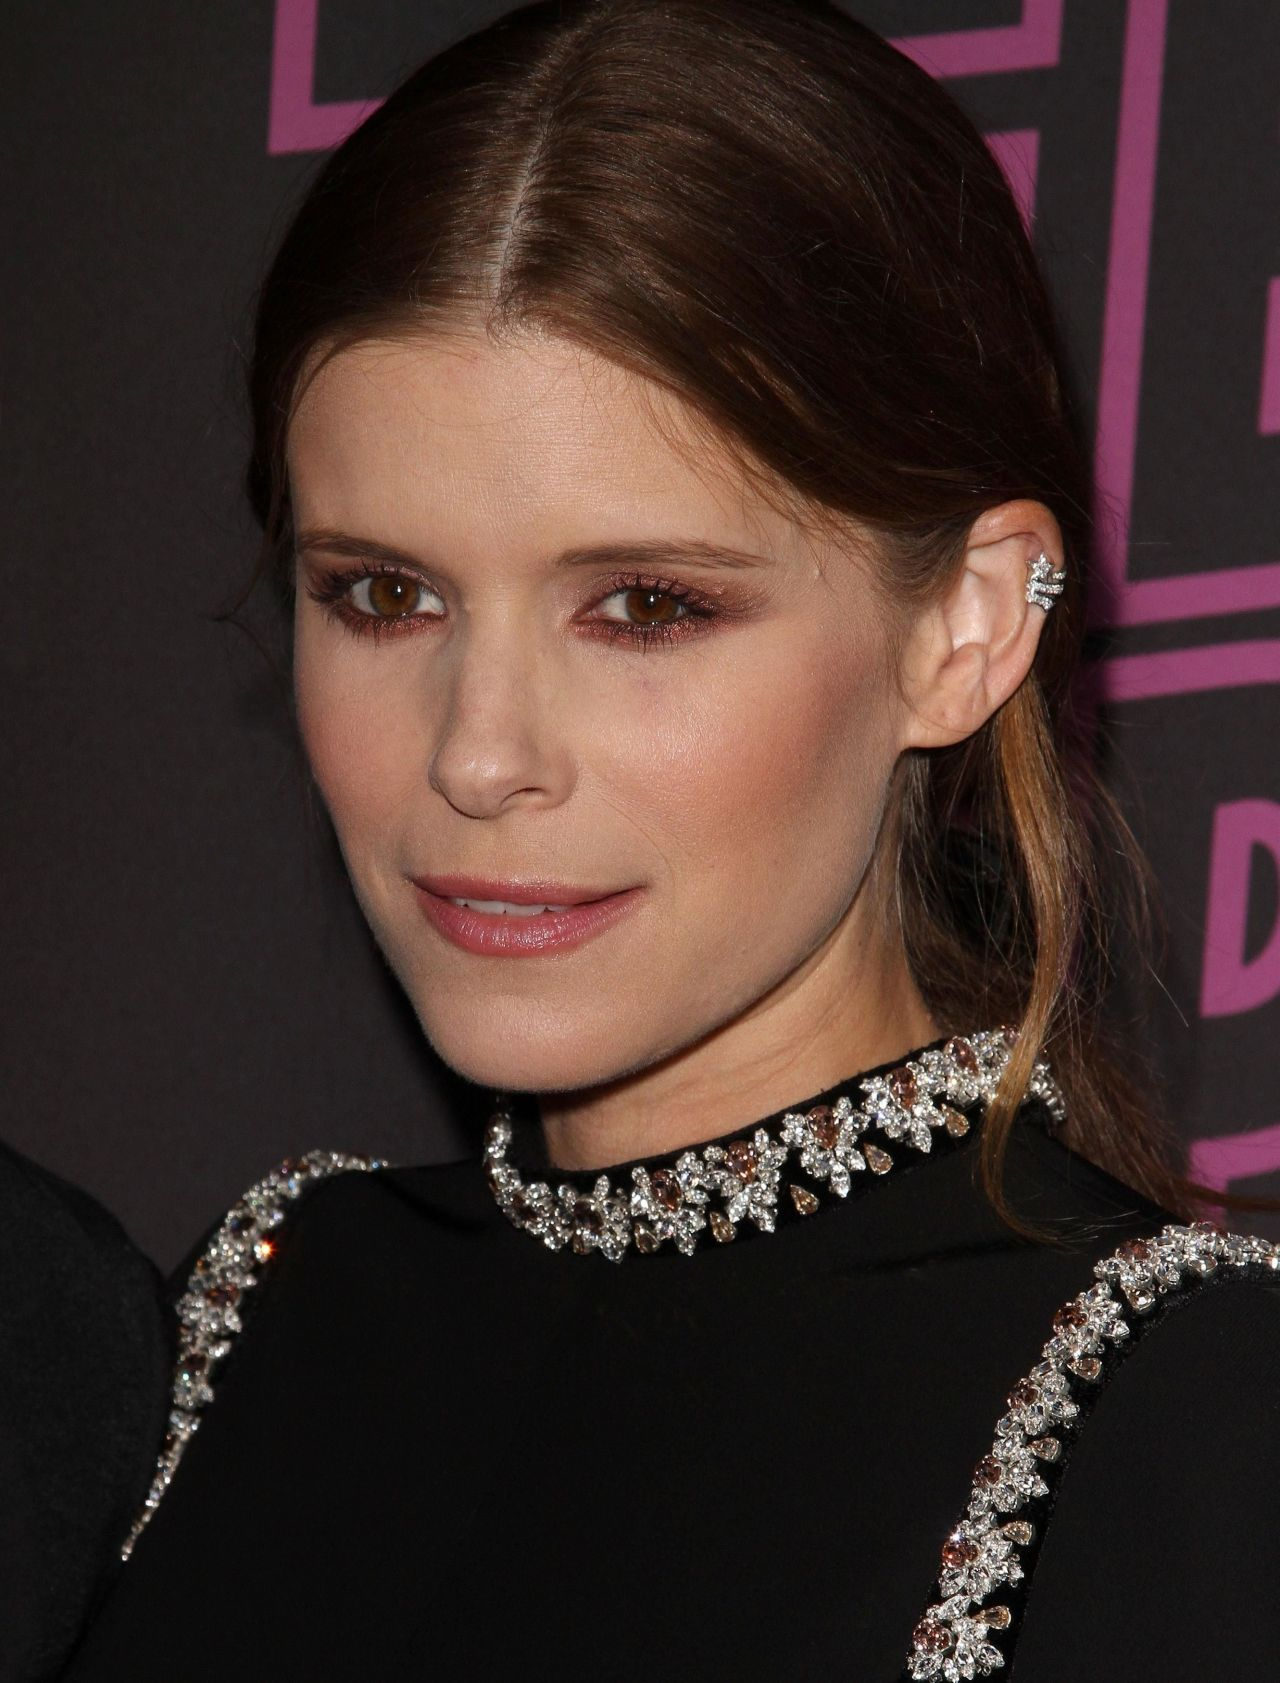 Kate Mara glowing at screening event in Hollywood